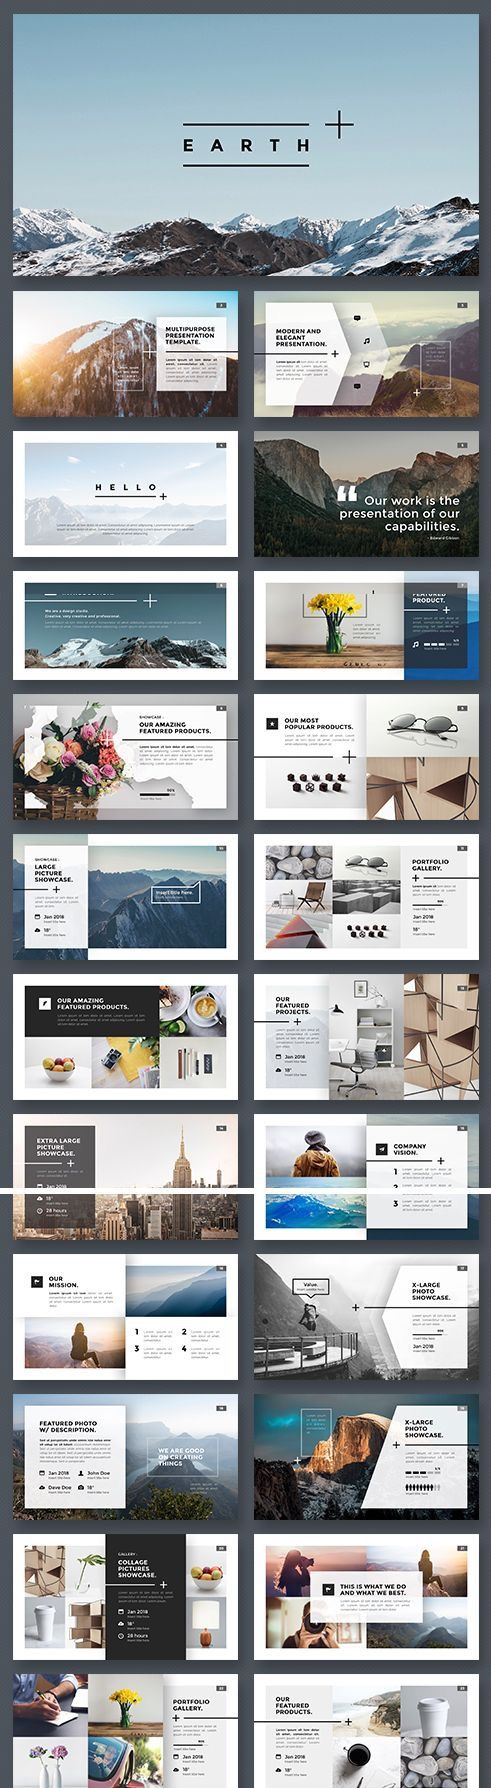 Pin By Fio Soto On Editorial Keynote Design Presentation Design Layout Presentation Design